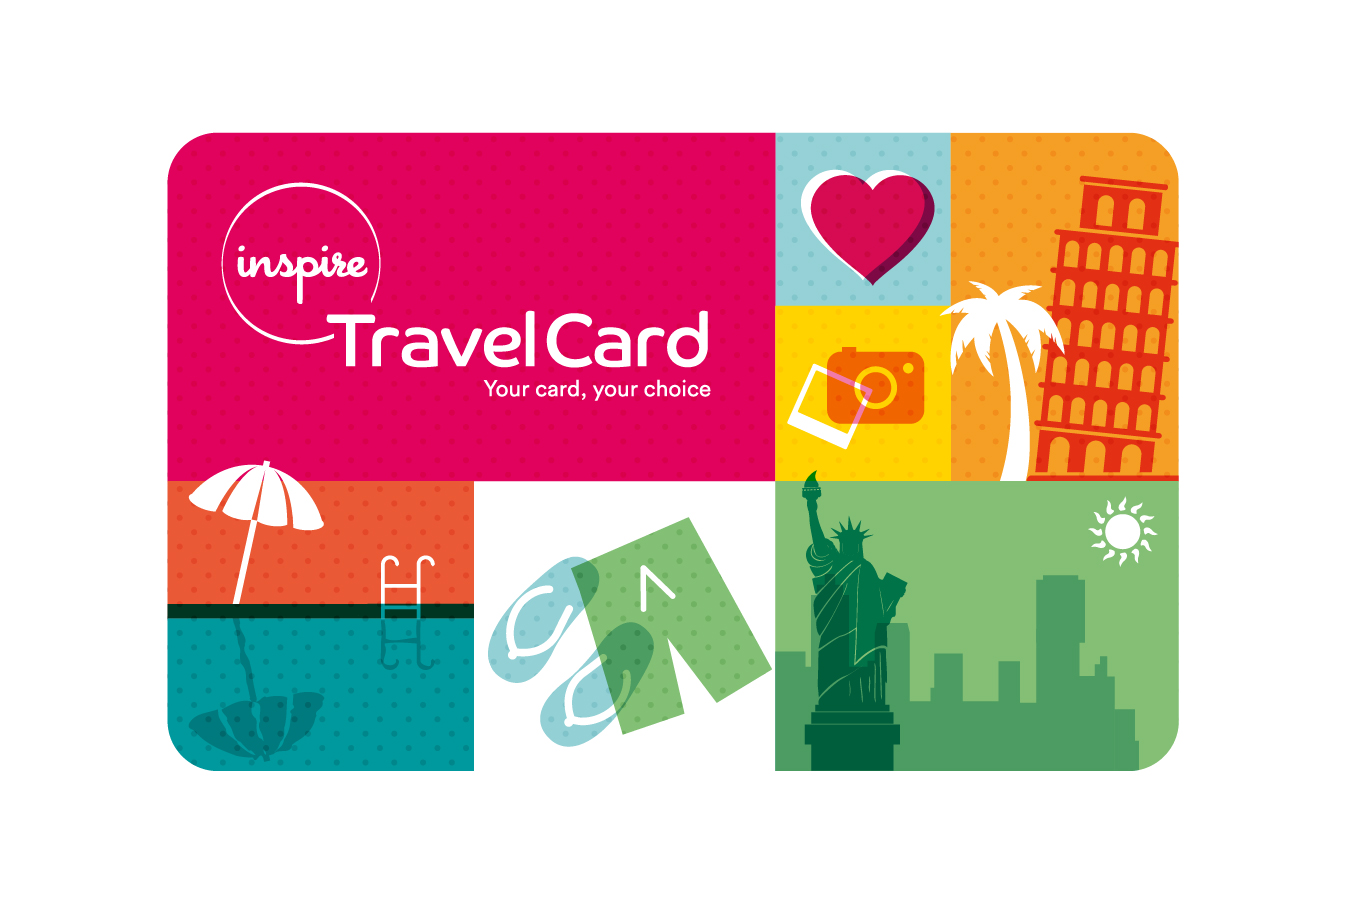 Inspire Travel Card Inspire